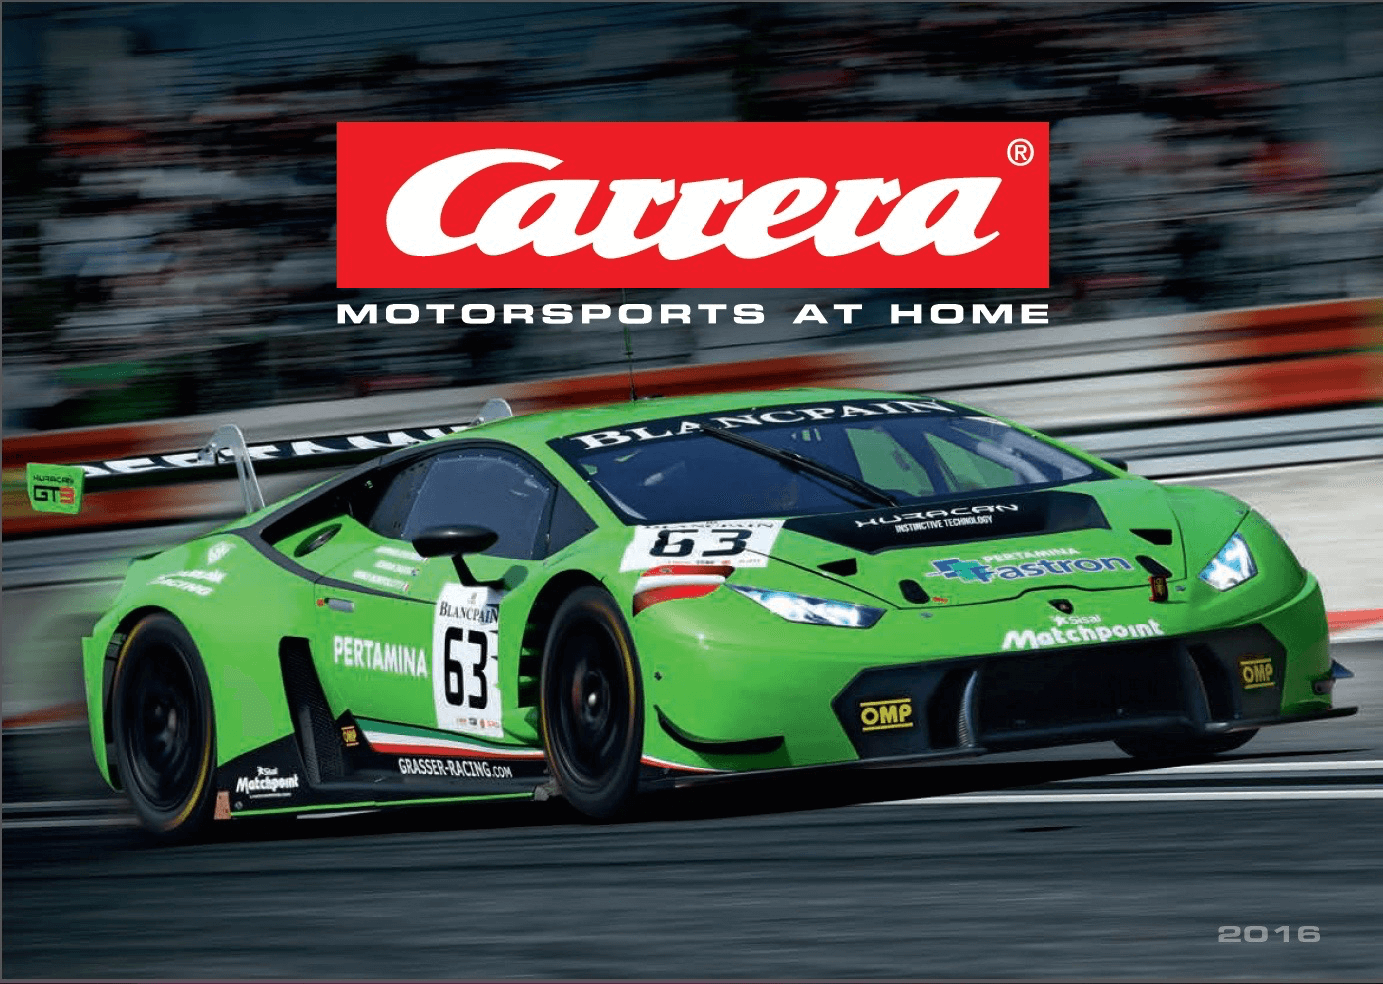 71209 Carrera 2016 Product Catalog